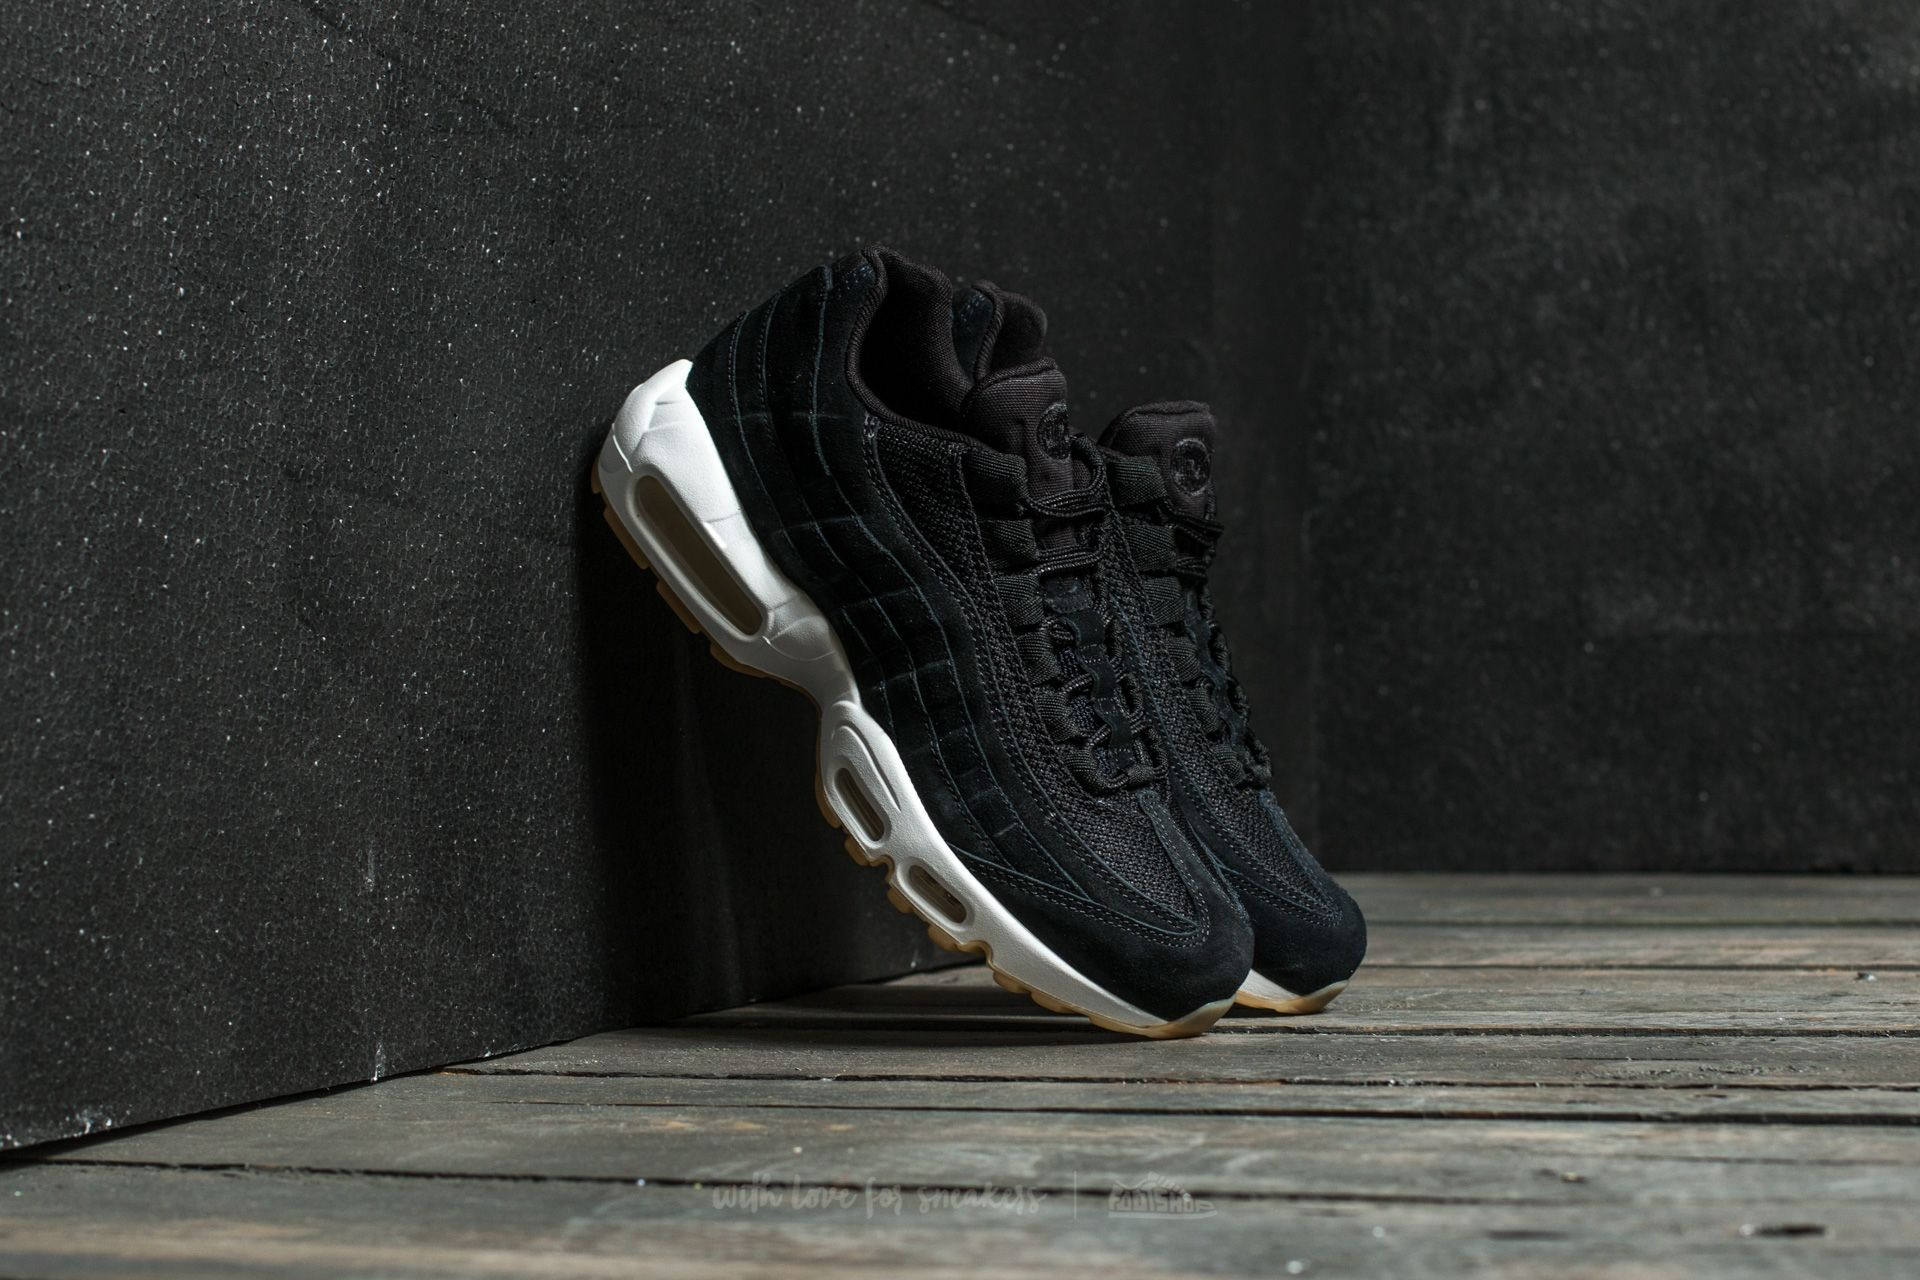 official photos 758e8 f36ed Nike Air Max 95 Premium. Black  Black-Muslin-White